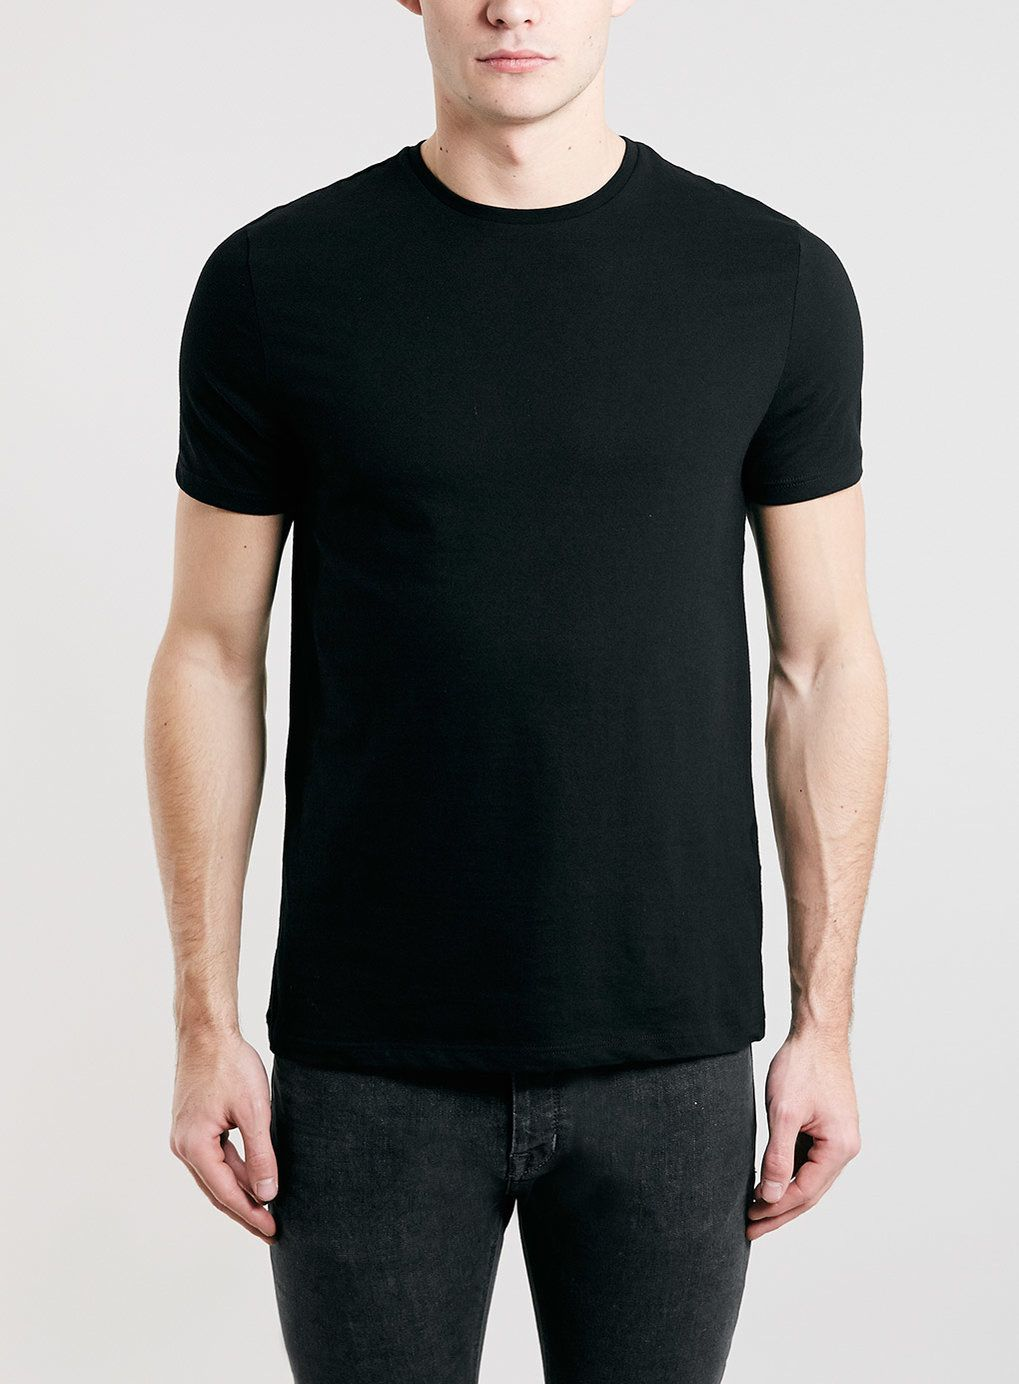 Black t shirt man - Black Slim Crew T Shirt